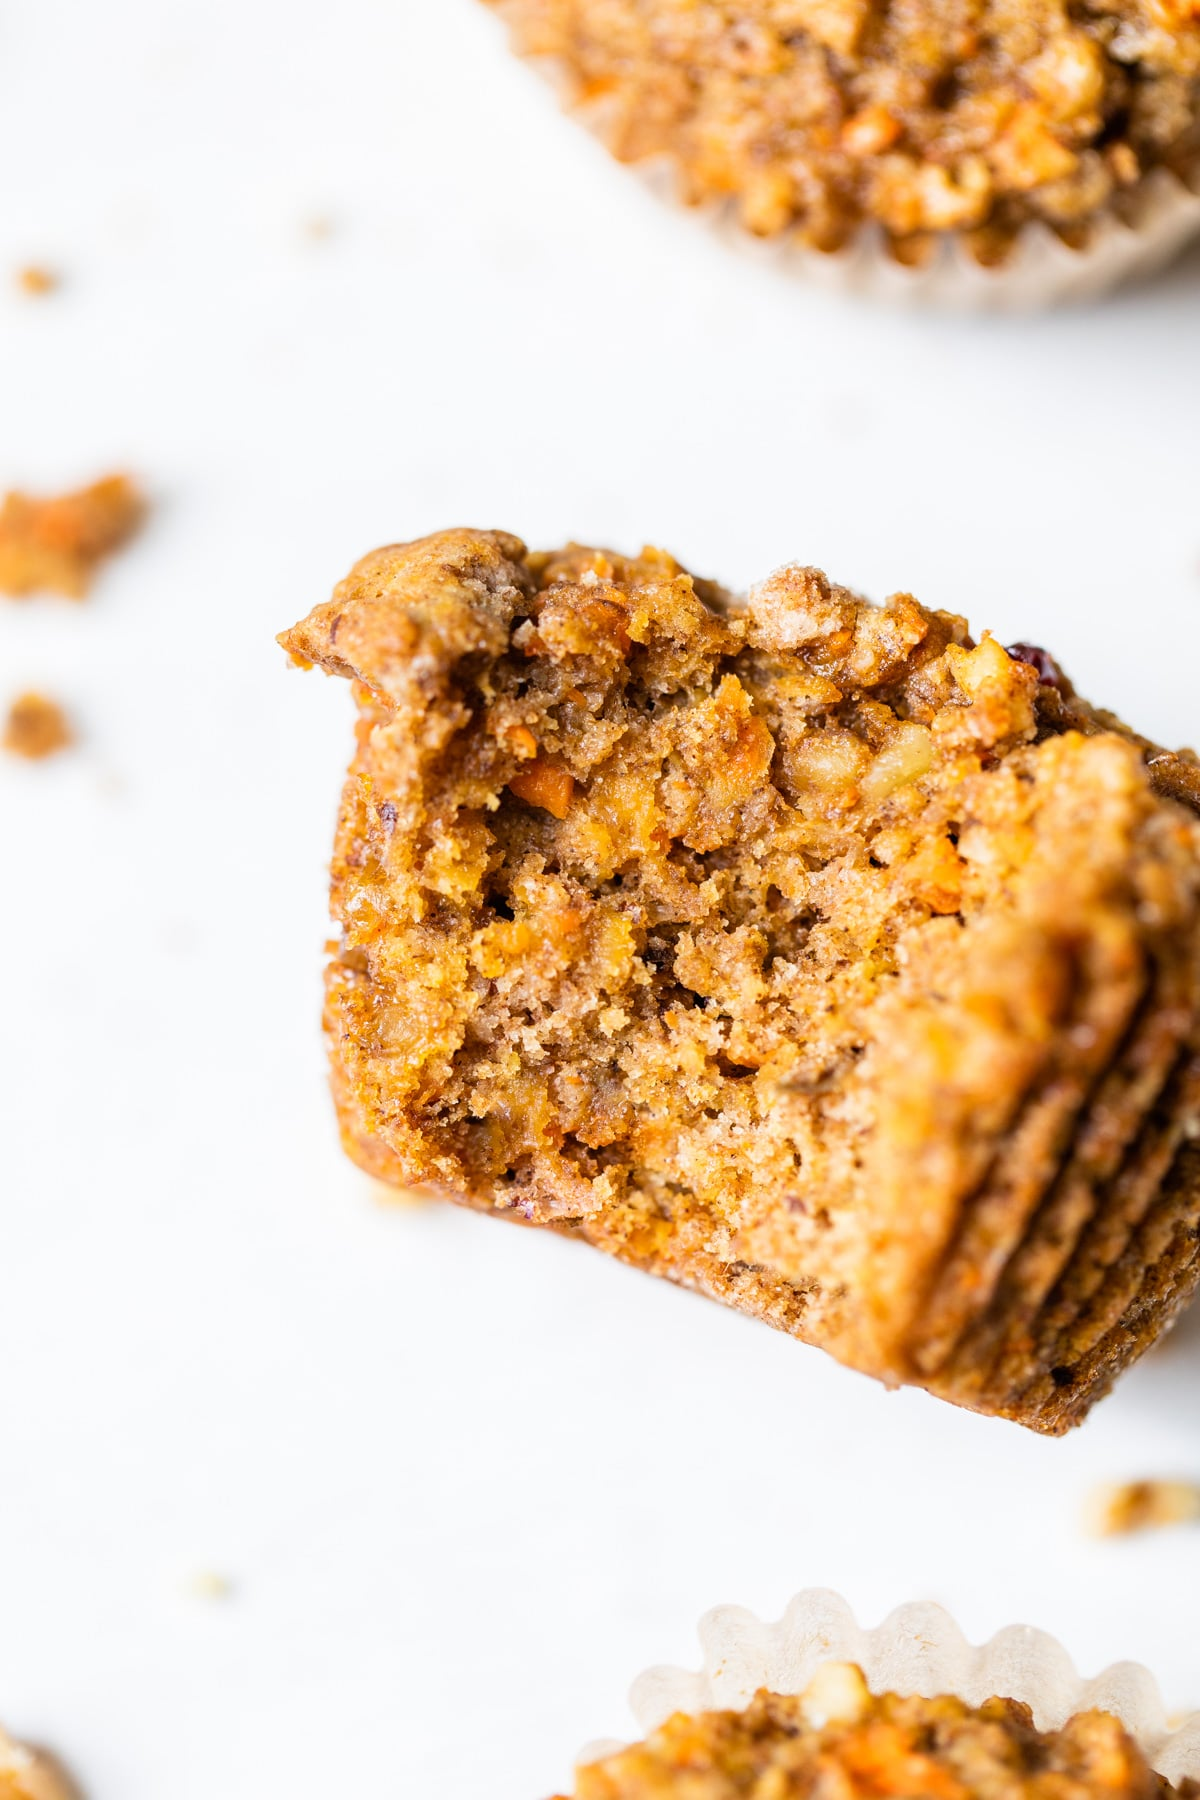 muffin with a bite taken out of it